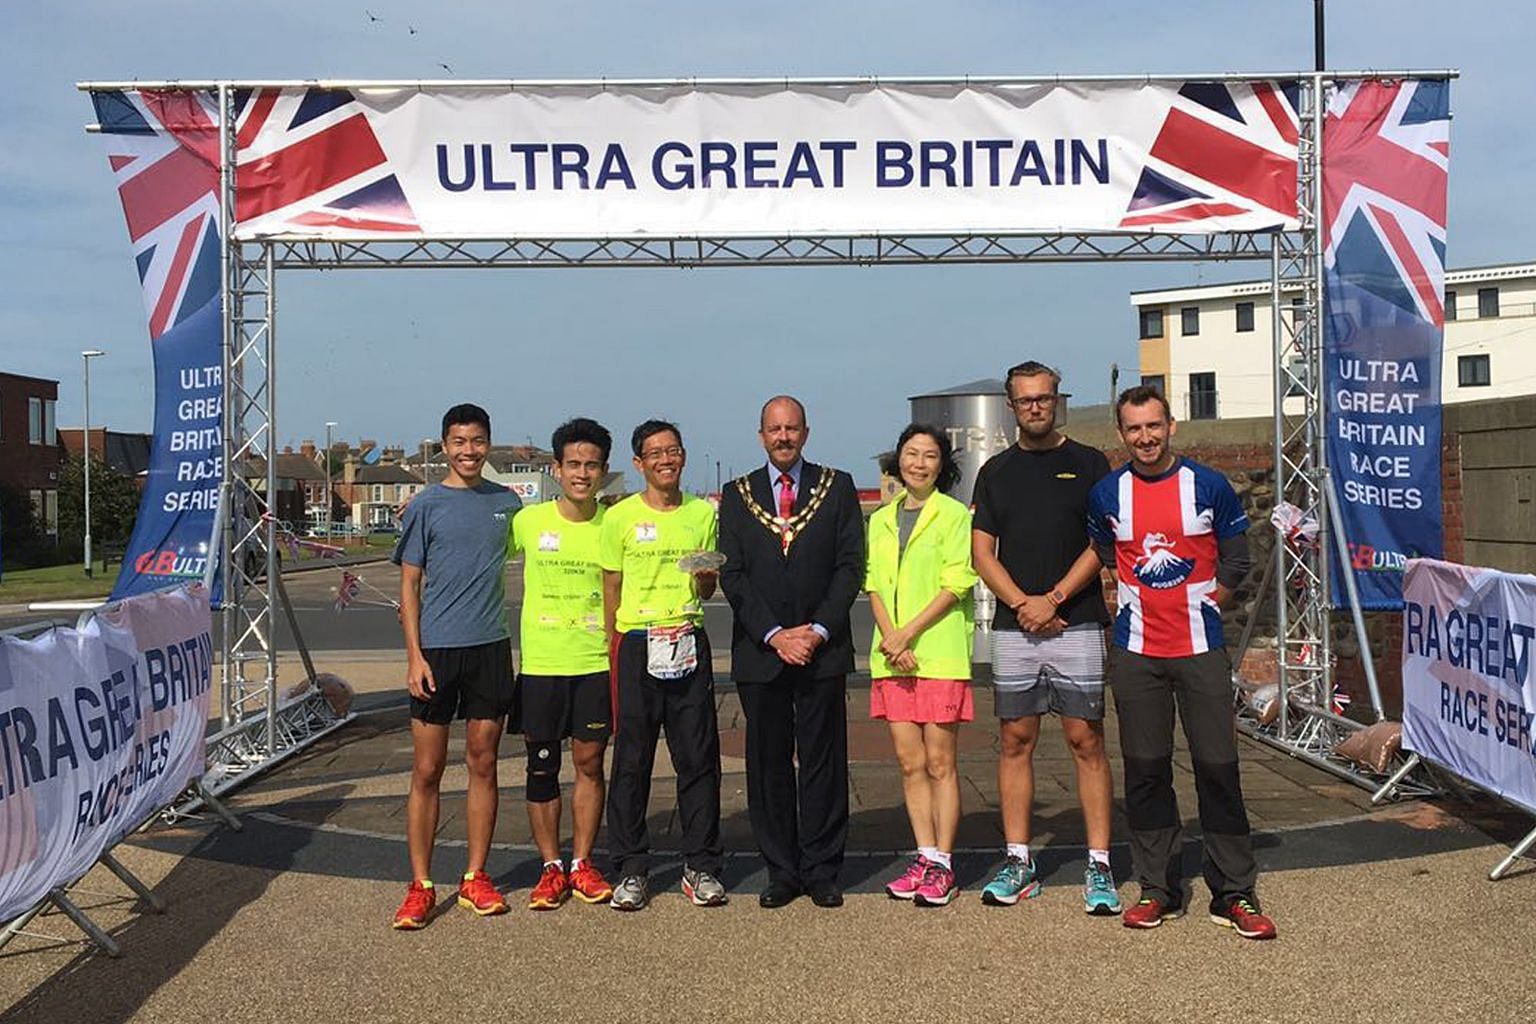 Mr Lim (third from left) at the finishing line on Tuesday with (from left) his son, Mr David Lim; his son's friend, Mr James Sng; Hornsea mayor Lee Walton; Mr Lim's wife, Ms Deborah Mok; Mr Lim's British physician, Dr Tomas Wally; and race director M